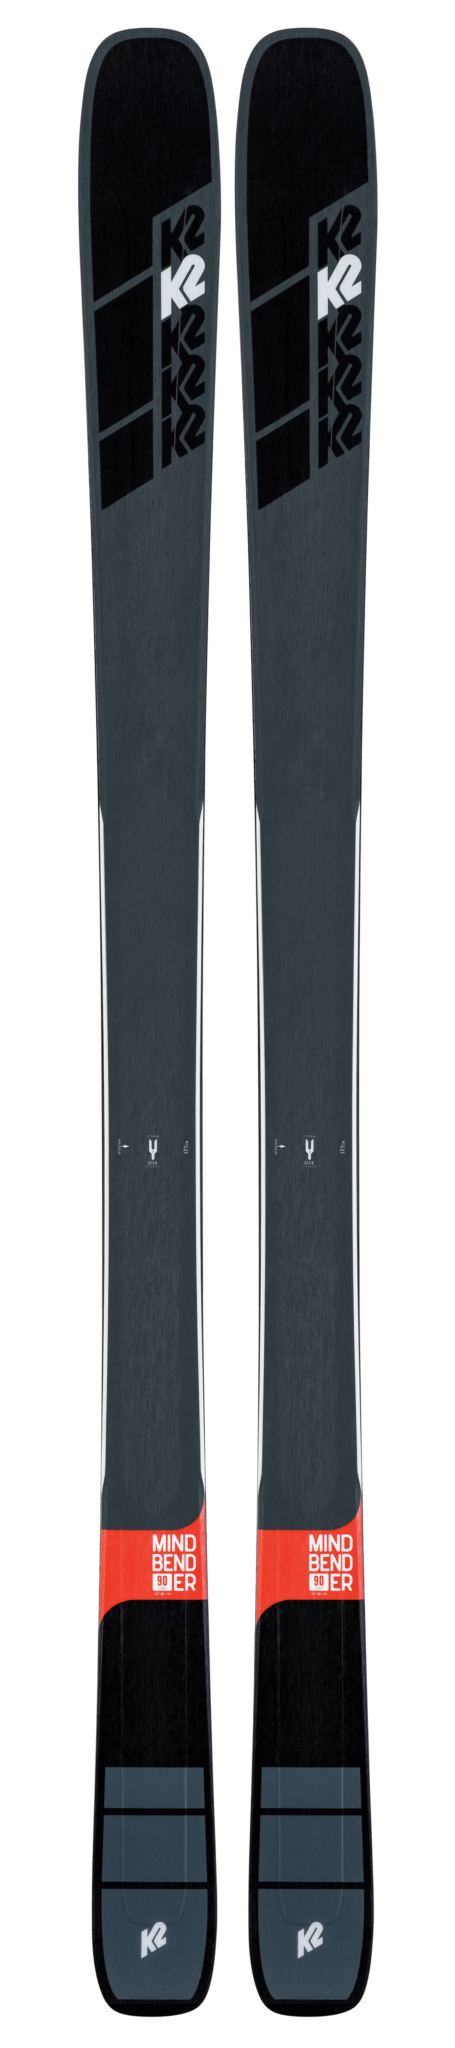 K2 Mindbender 90 Ti Skis (Flat) 2019-20 at Northern Ski Works